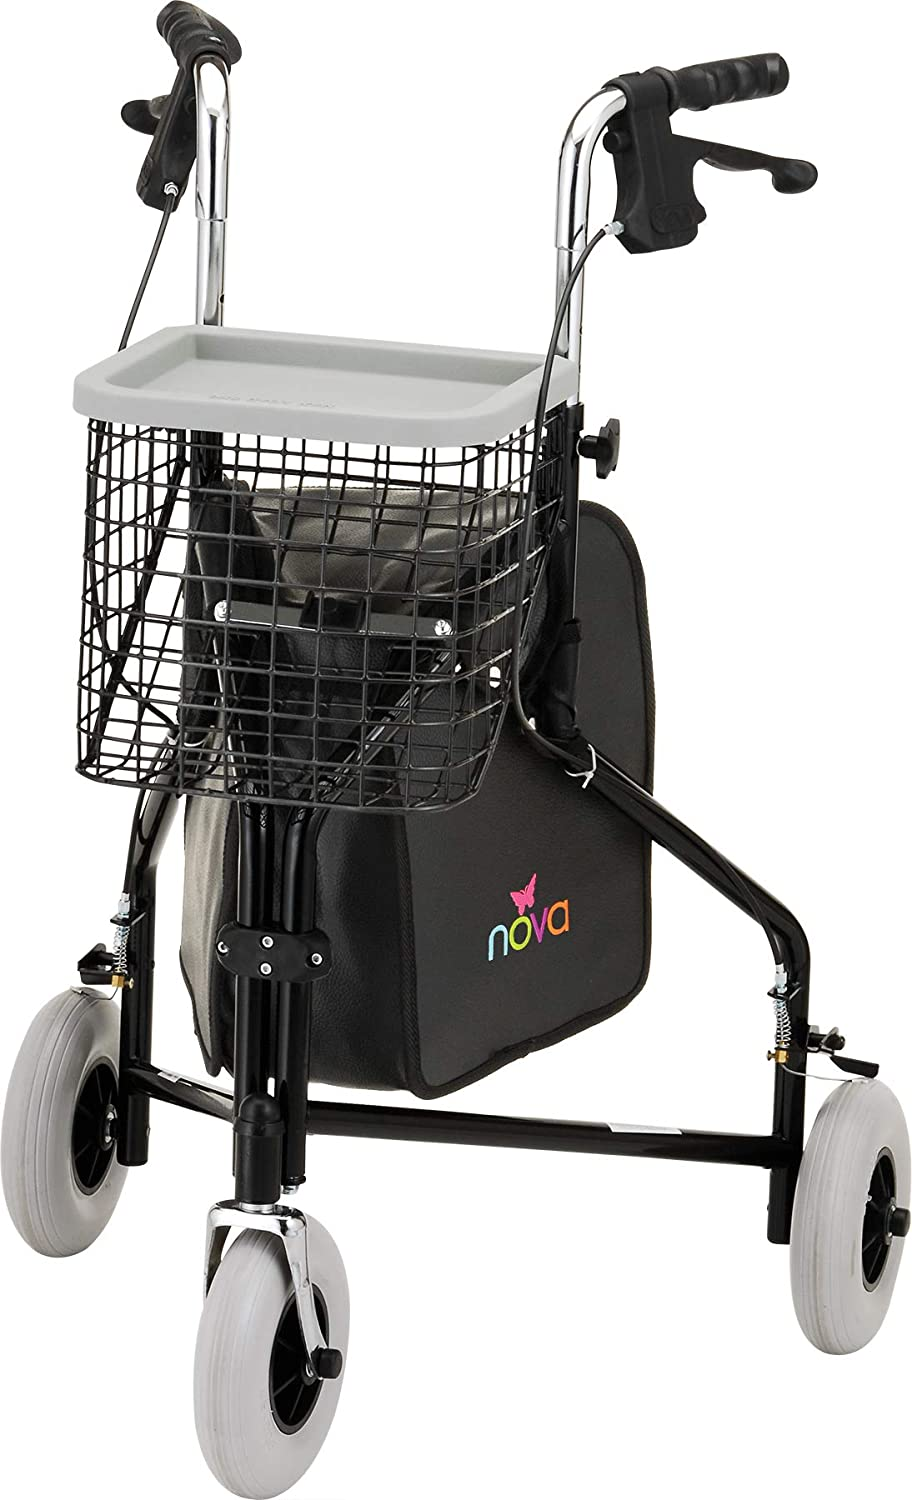 B0016JDB8W NOVA Traveler 3 Wheel Rollator Walker, All Terrain 8 Wheels, Includes Bag, Basket and Tray, Black 71qGXWnpBsL